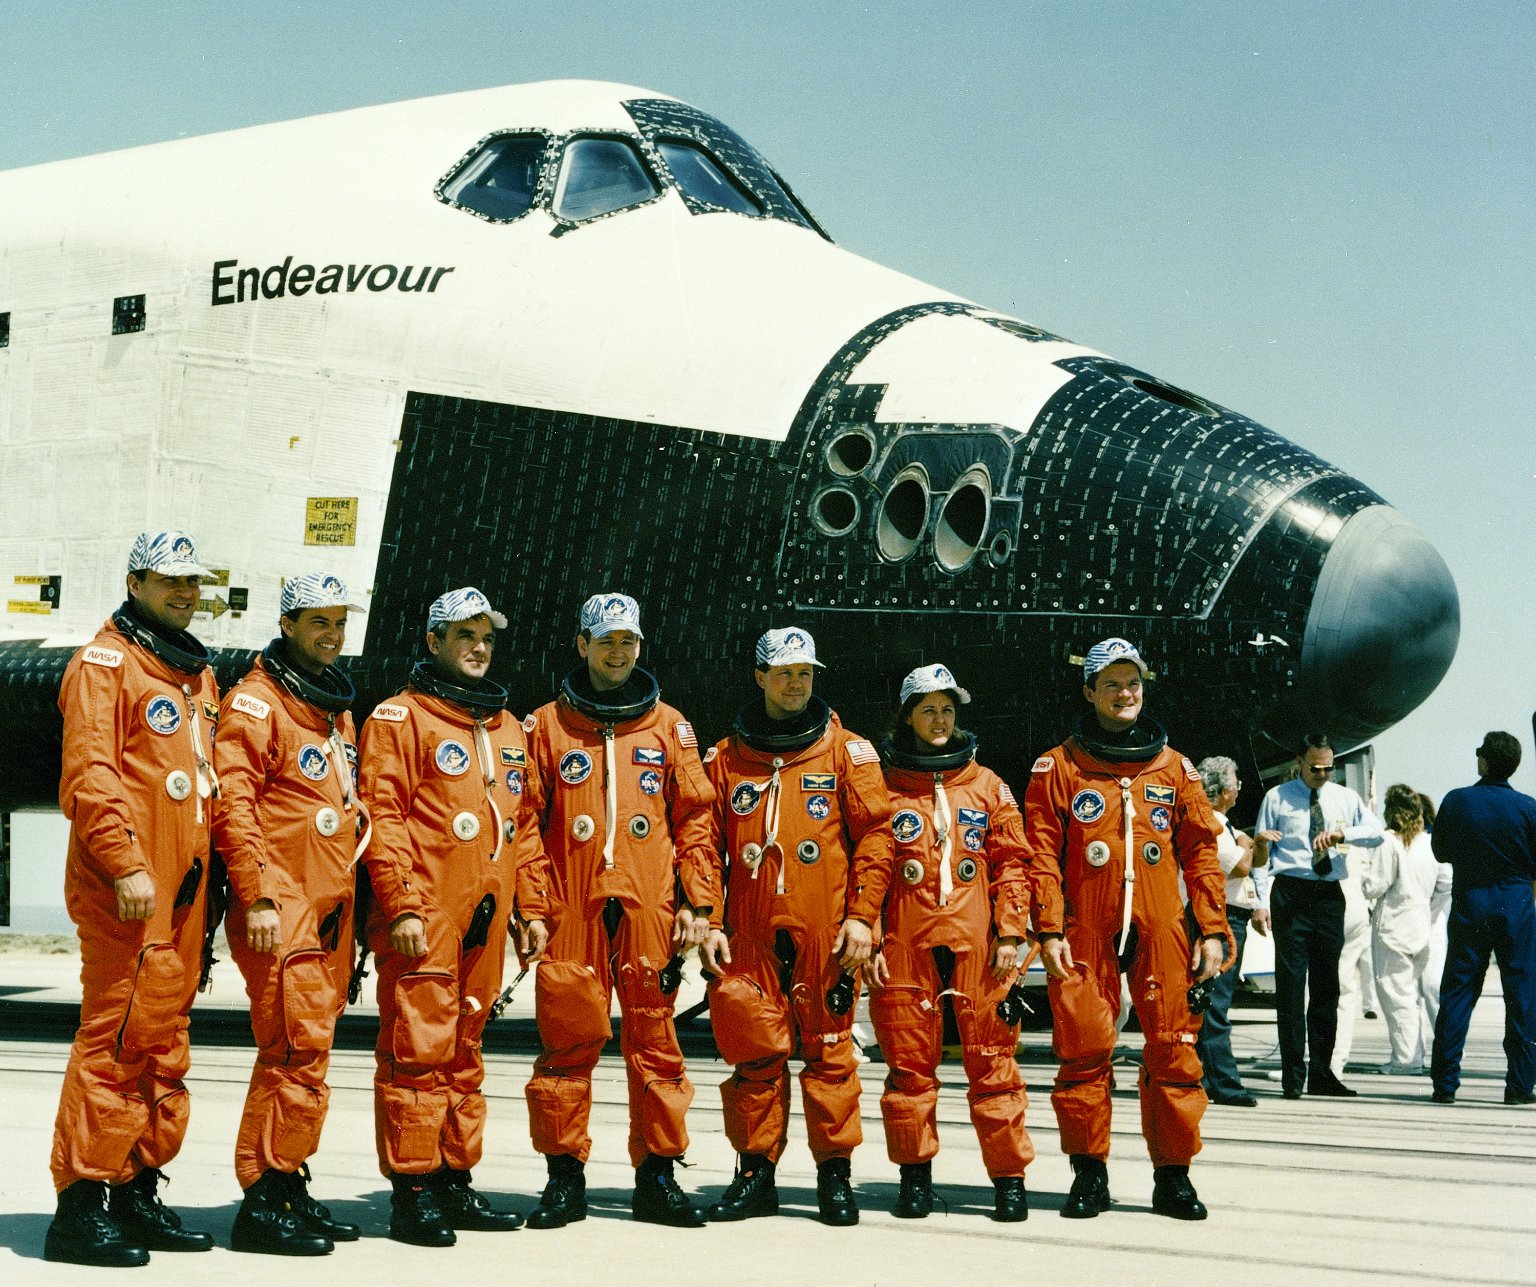 Flying NASA's Baby Spaceship: Q&A with Shuttle Endeavour's 1st Commander